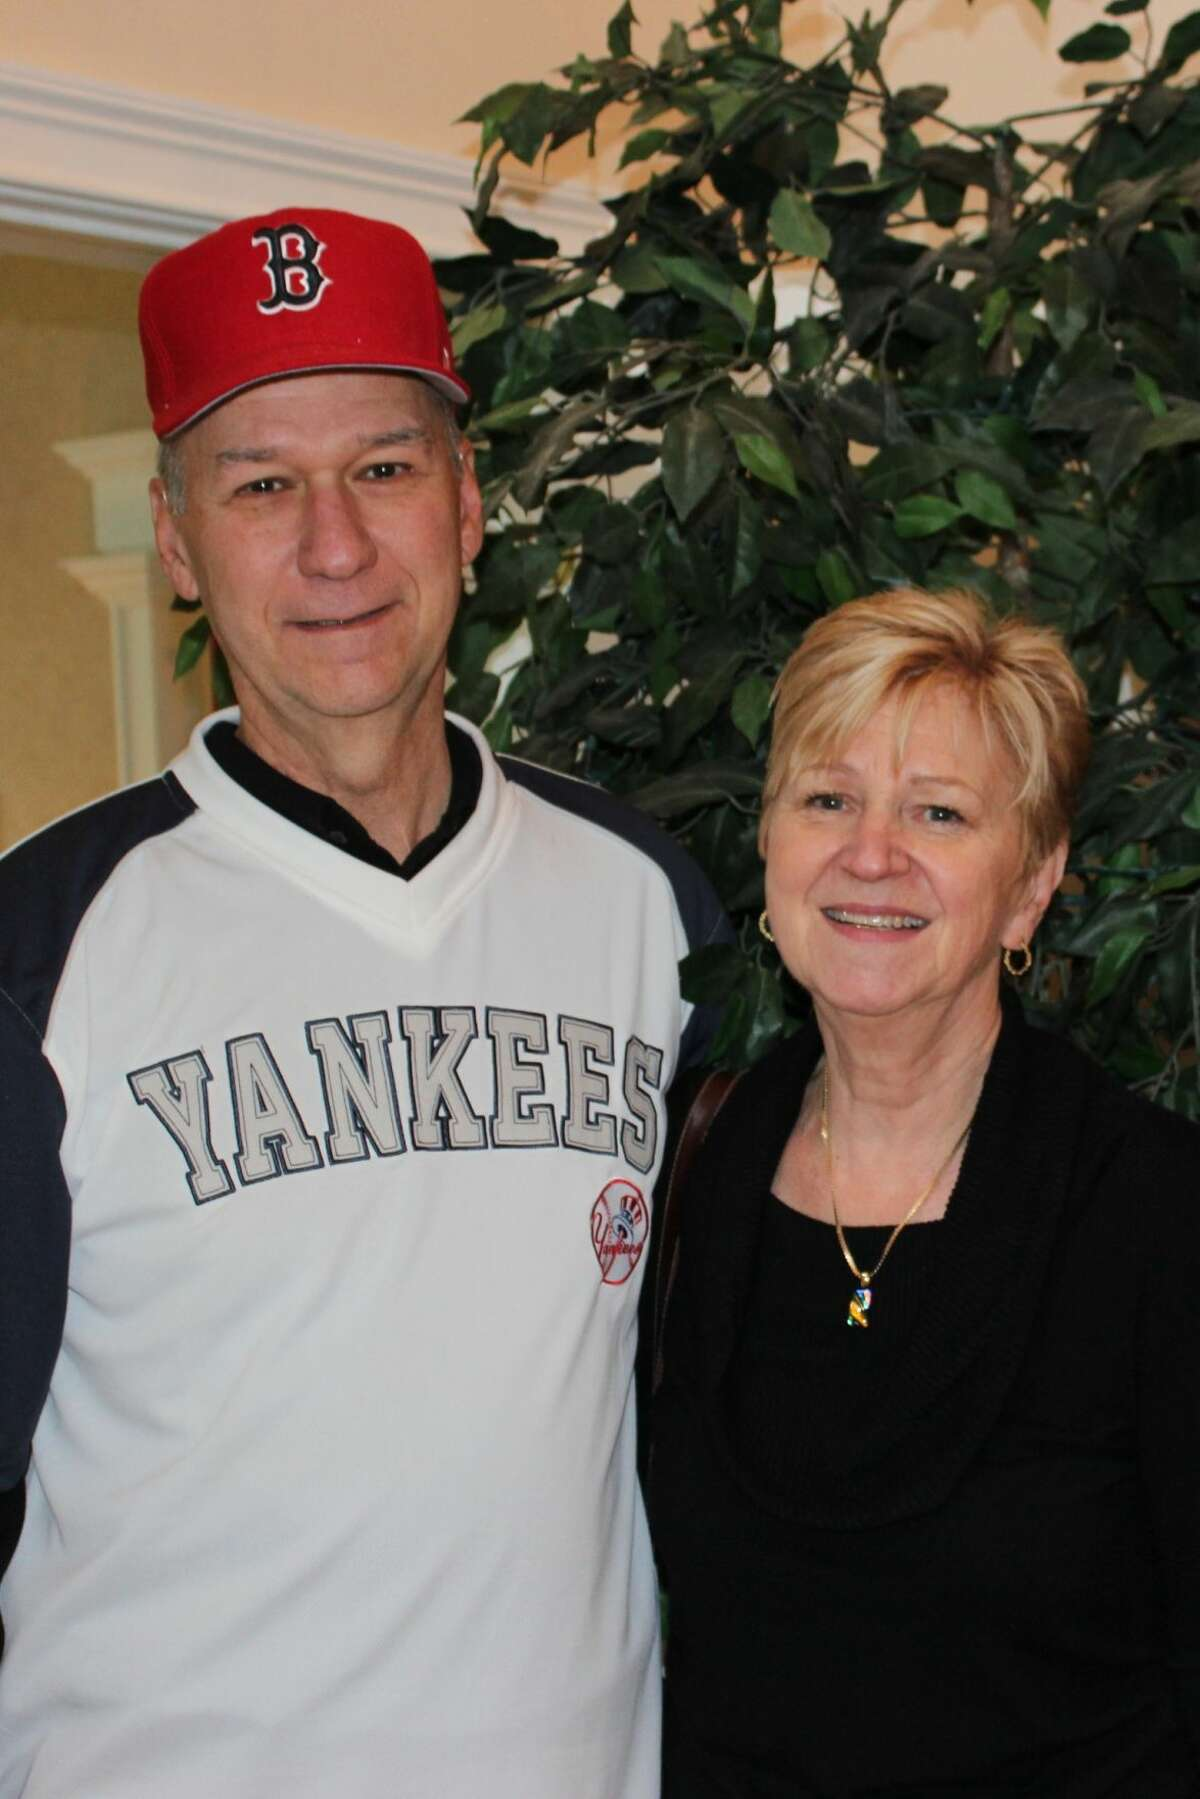 Gratefulheart recipient and Yankee's fan, Jim Hodrinsky of Mansfield Center, wears a Boston Red Sox hat in honor of the donor who gave him a second chance to enjoy the holidays with his wife and family. Jim joins with other organ transplant recipients to encourage everyone to register as an organ, eye and tissue donor in the New Year.